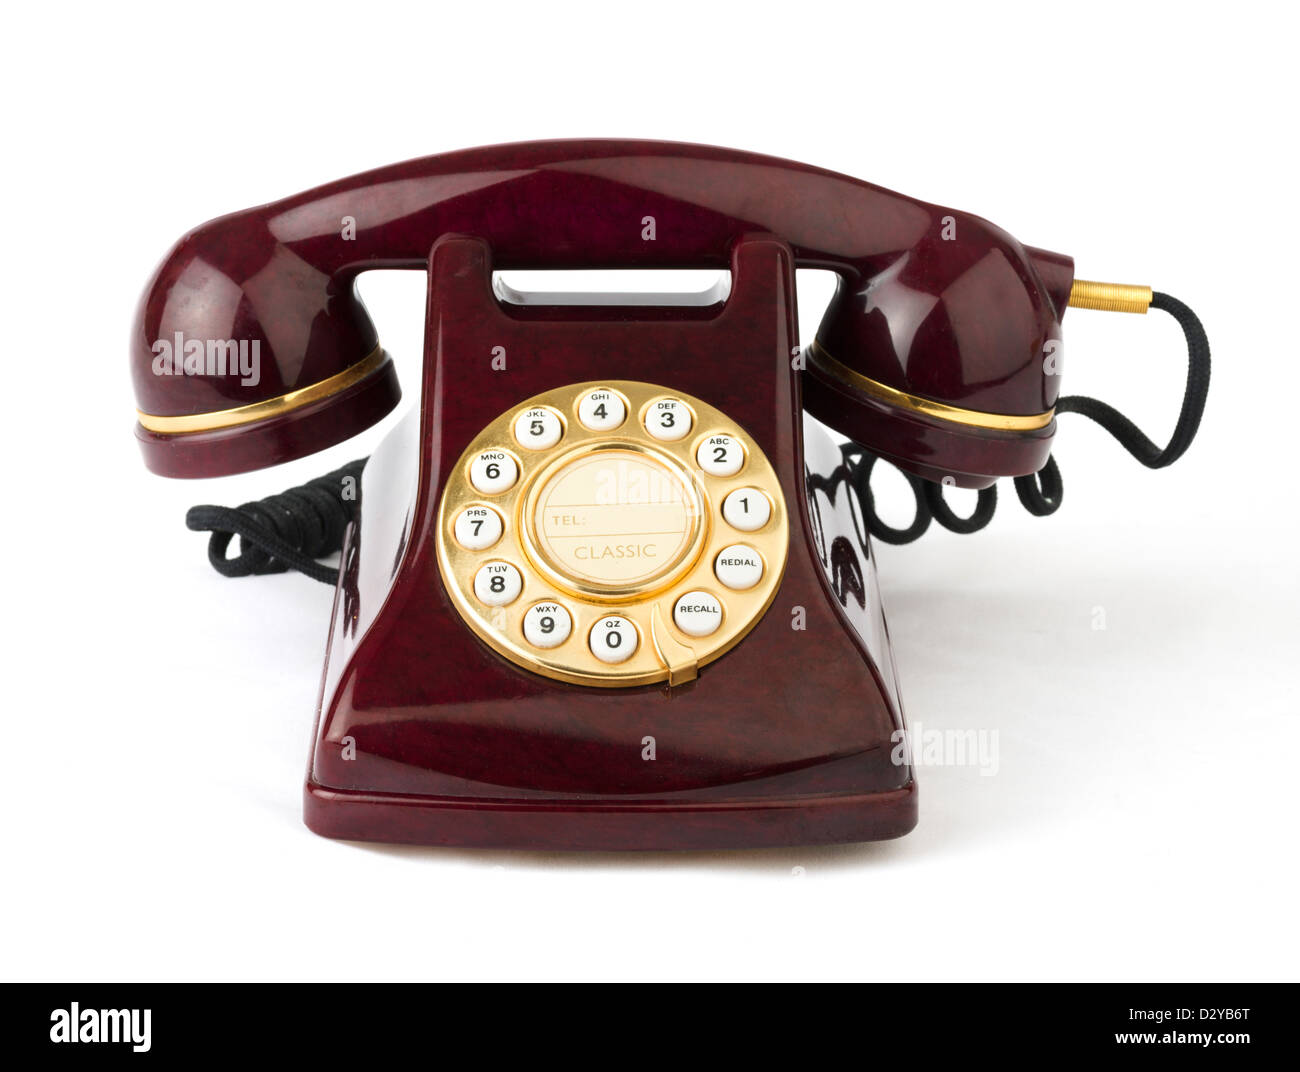 Push button replica of an old fashioned rotary dial telephone, UK - Stock Image